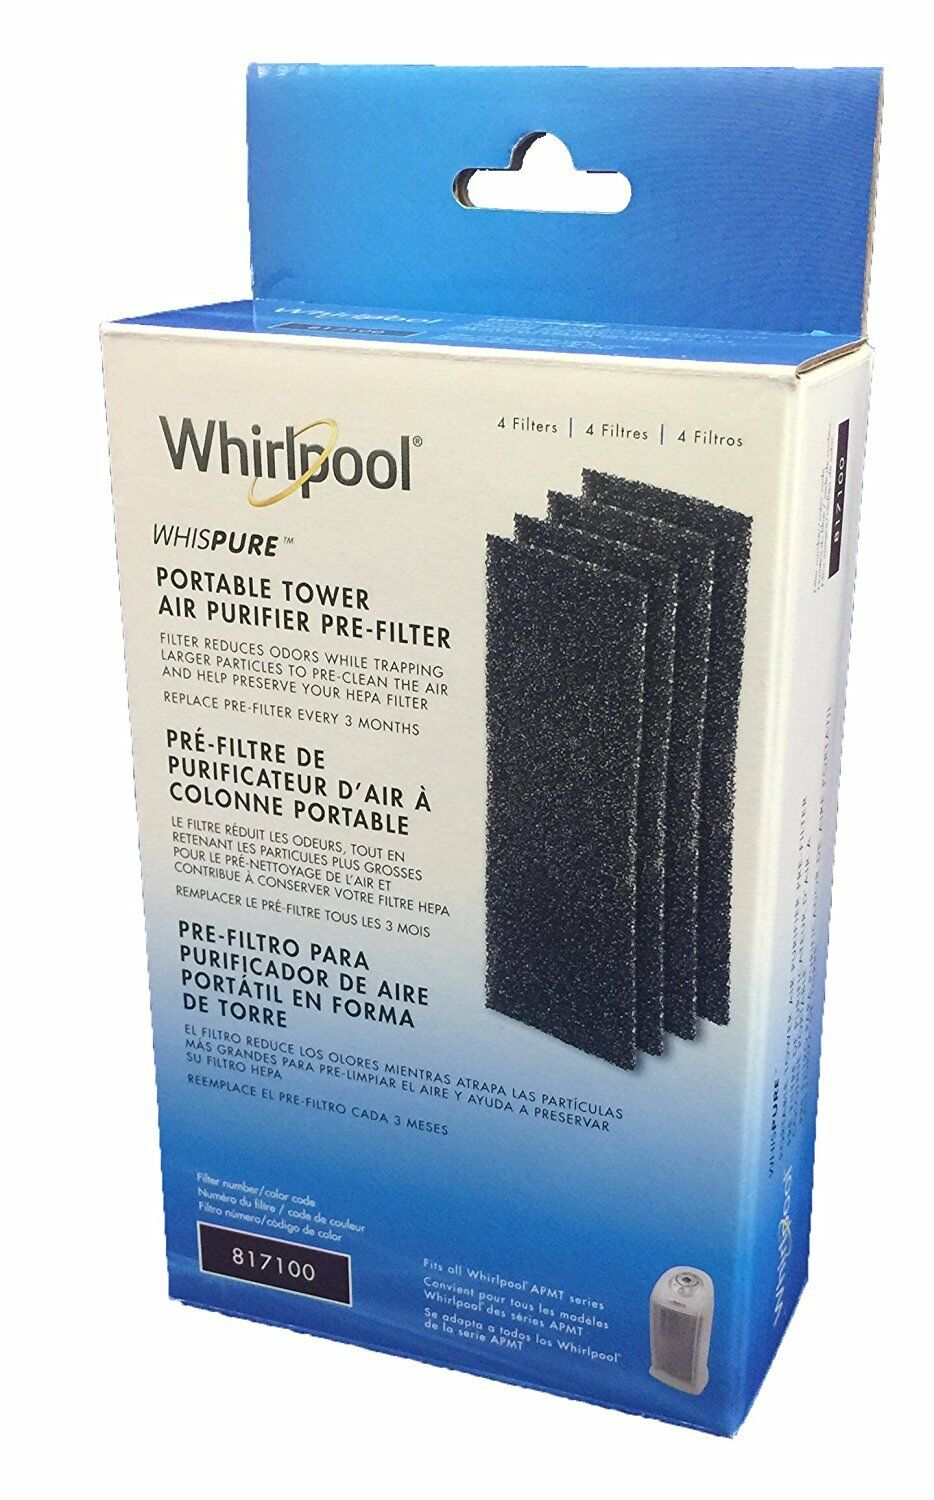 Whirlpool Whispure Portable Tower Air Purifier Pre-Filter, 817100, 4 Ct.